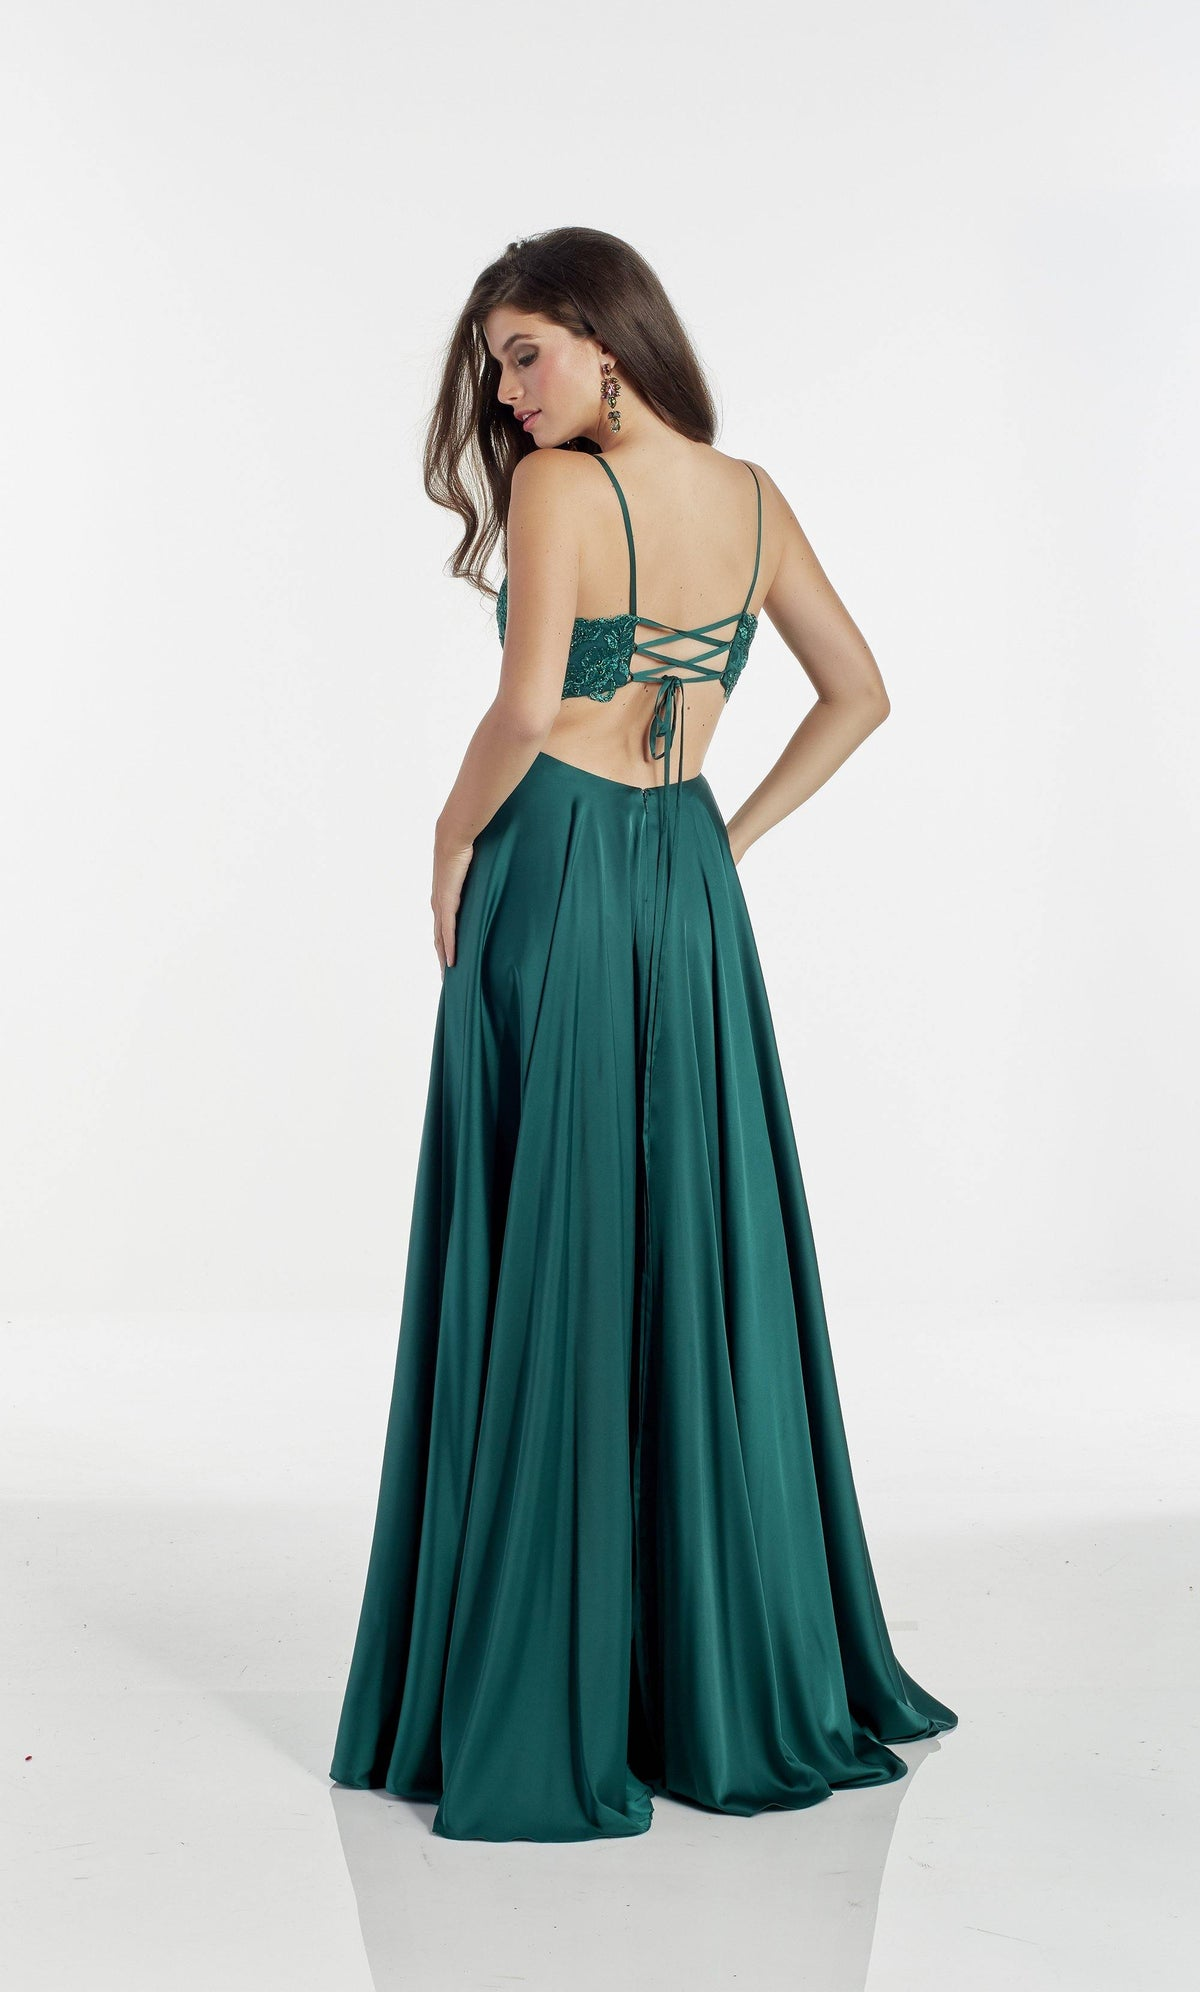 Pine flowy bridesmaid dress with a lace up back